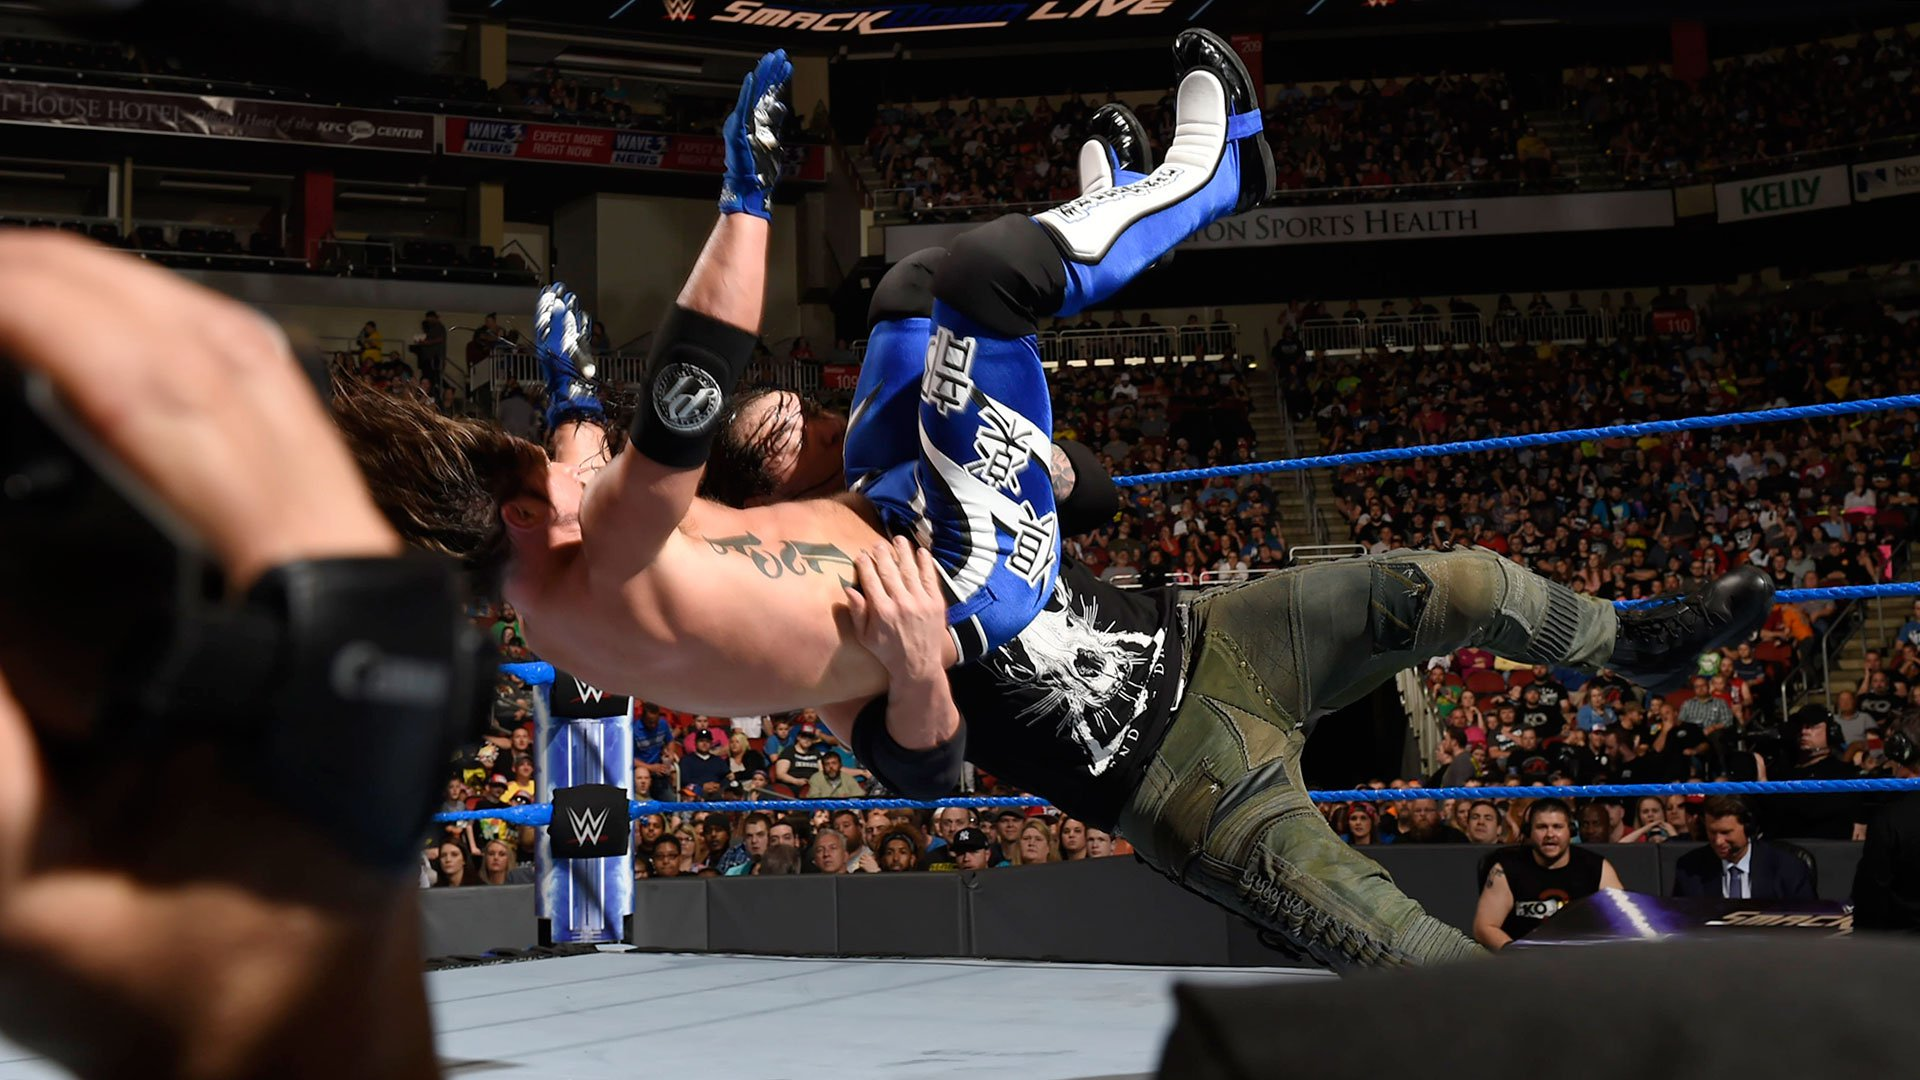 ... but The Lone Wolf strikes back with a suplex.